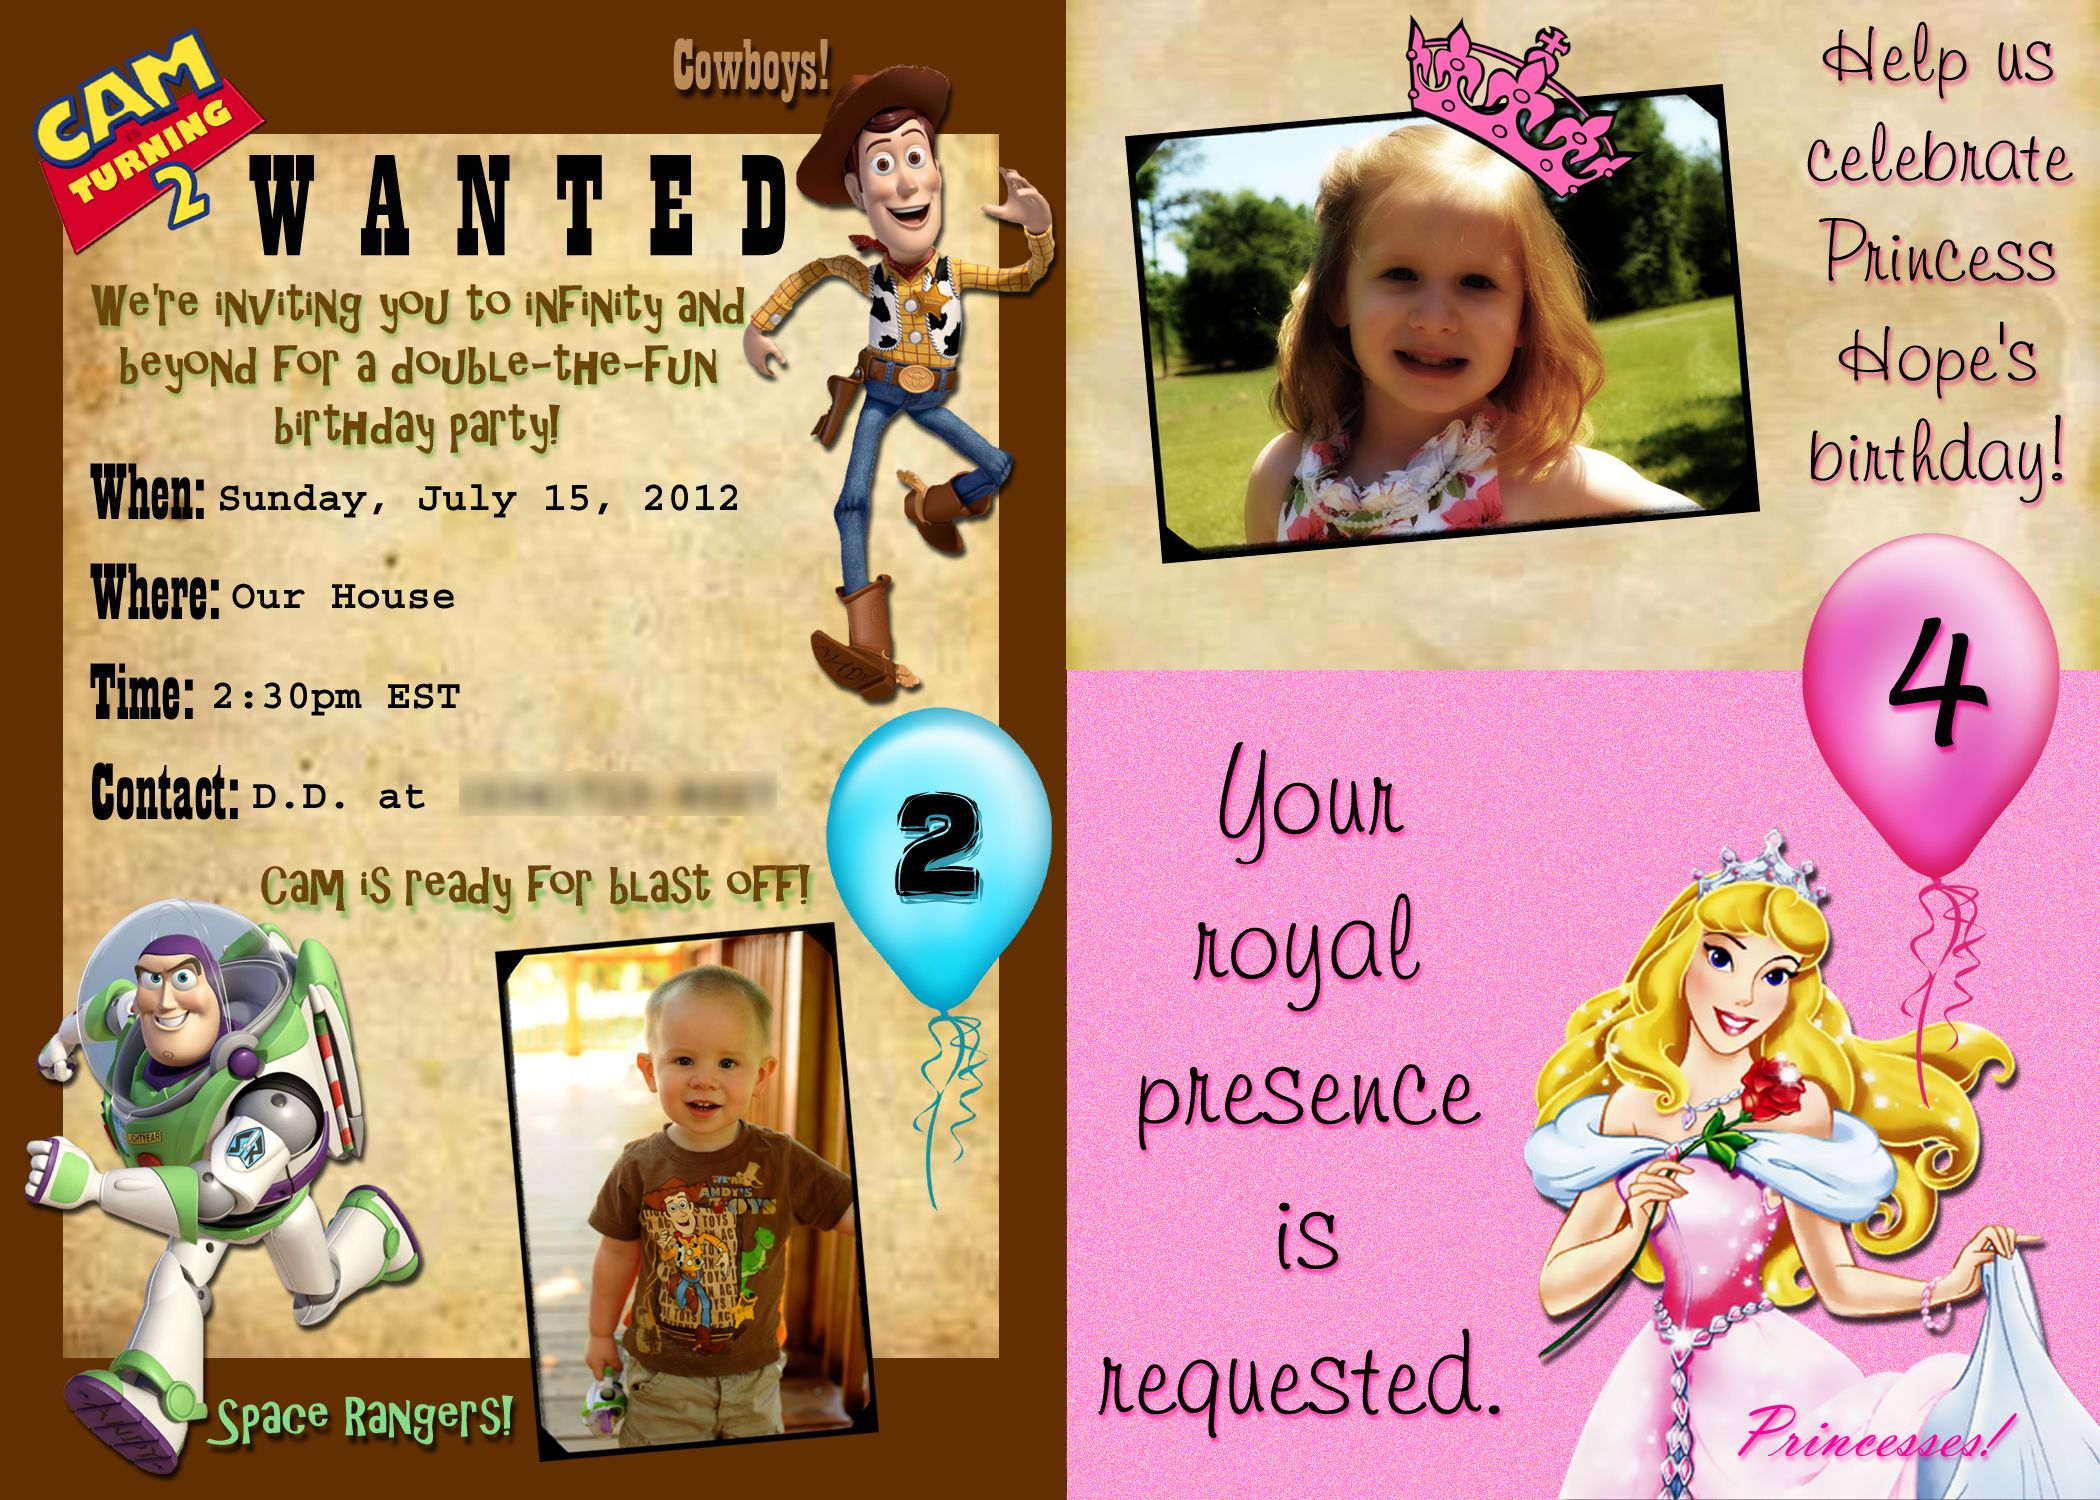 Pin by D.D. Miller on Princess & Toy Story Party | Pinterest ...